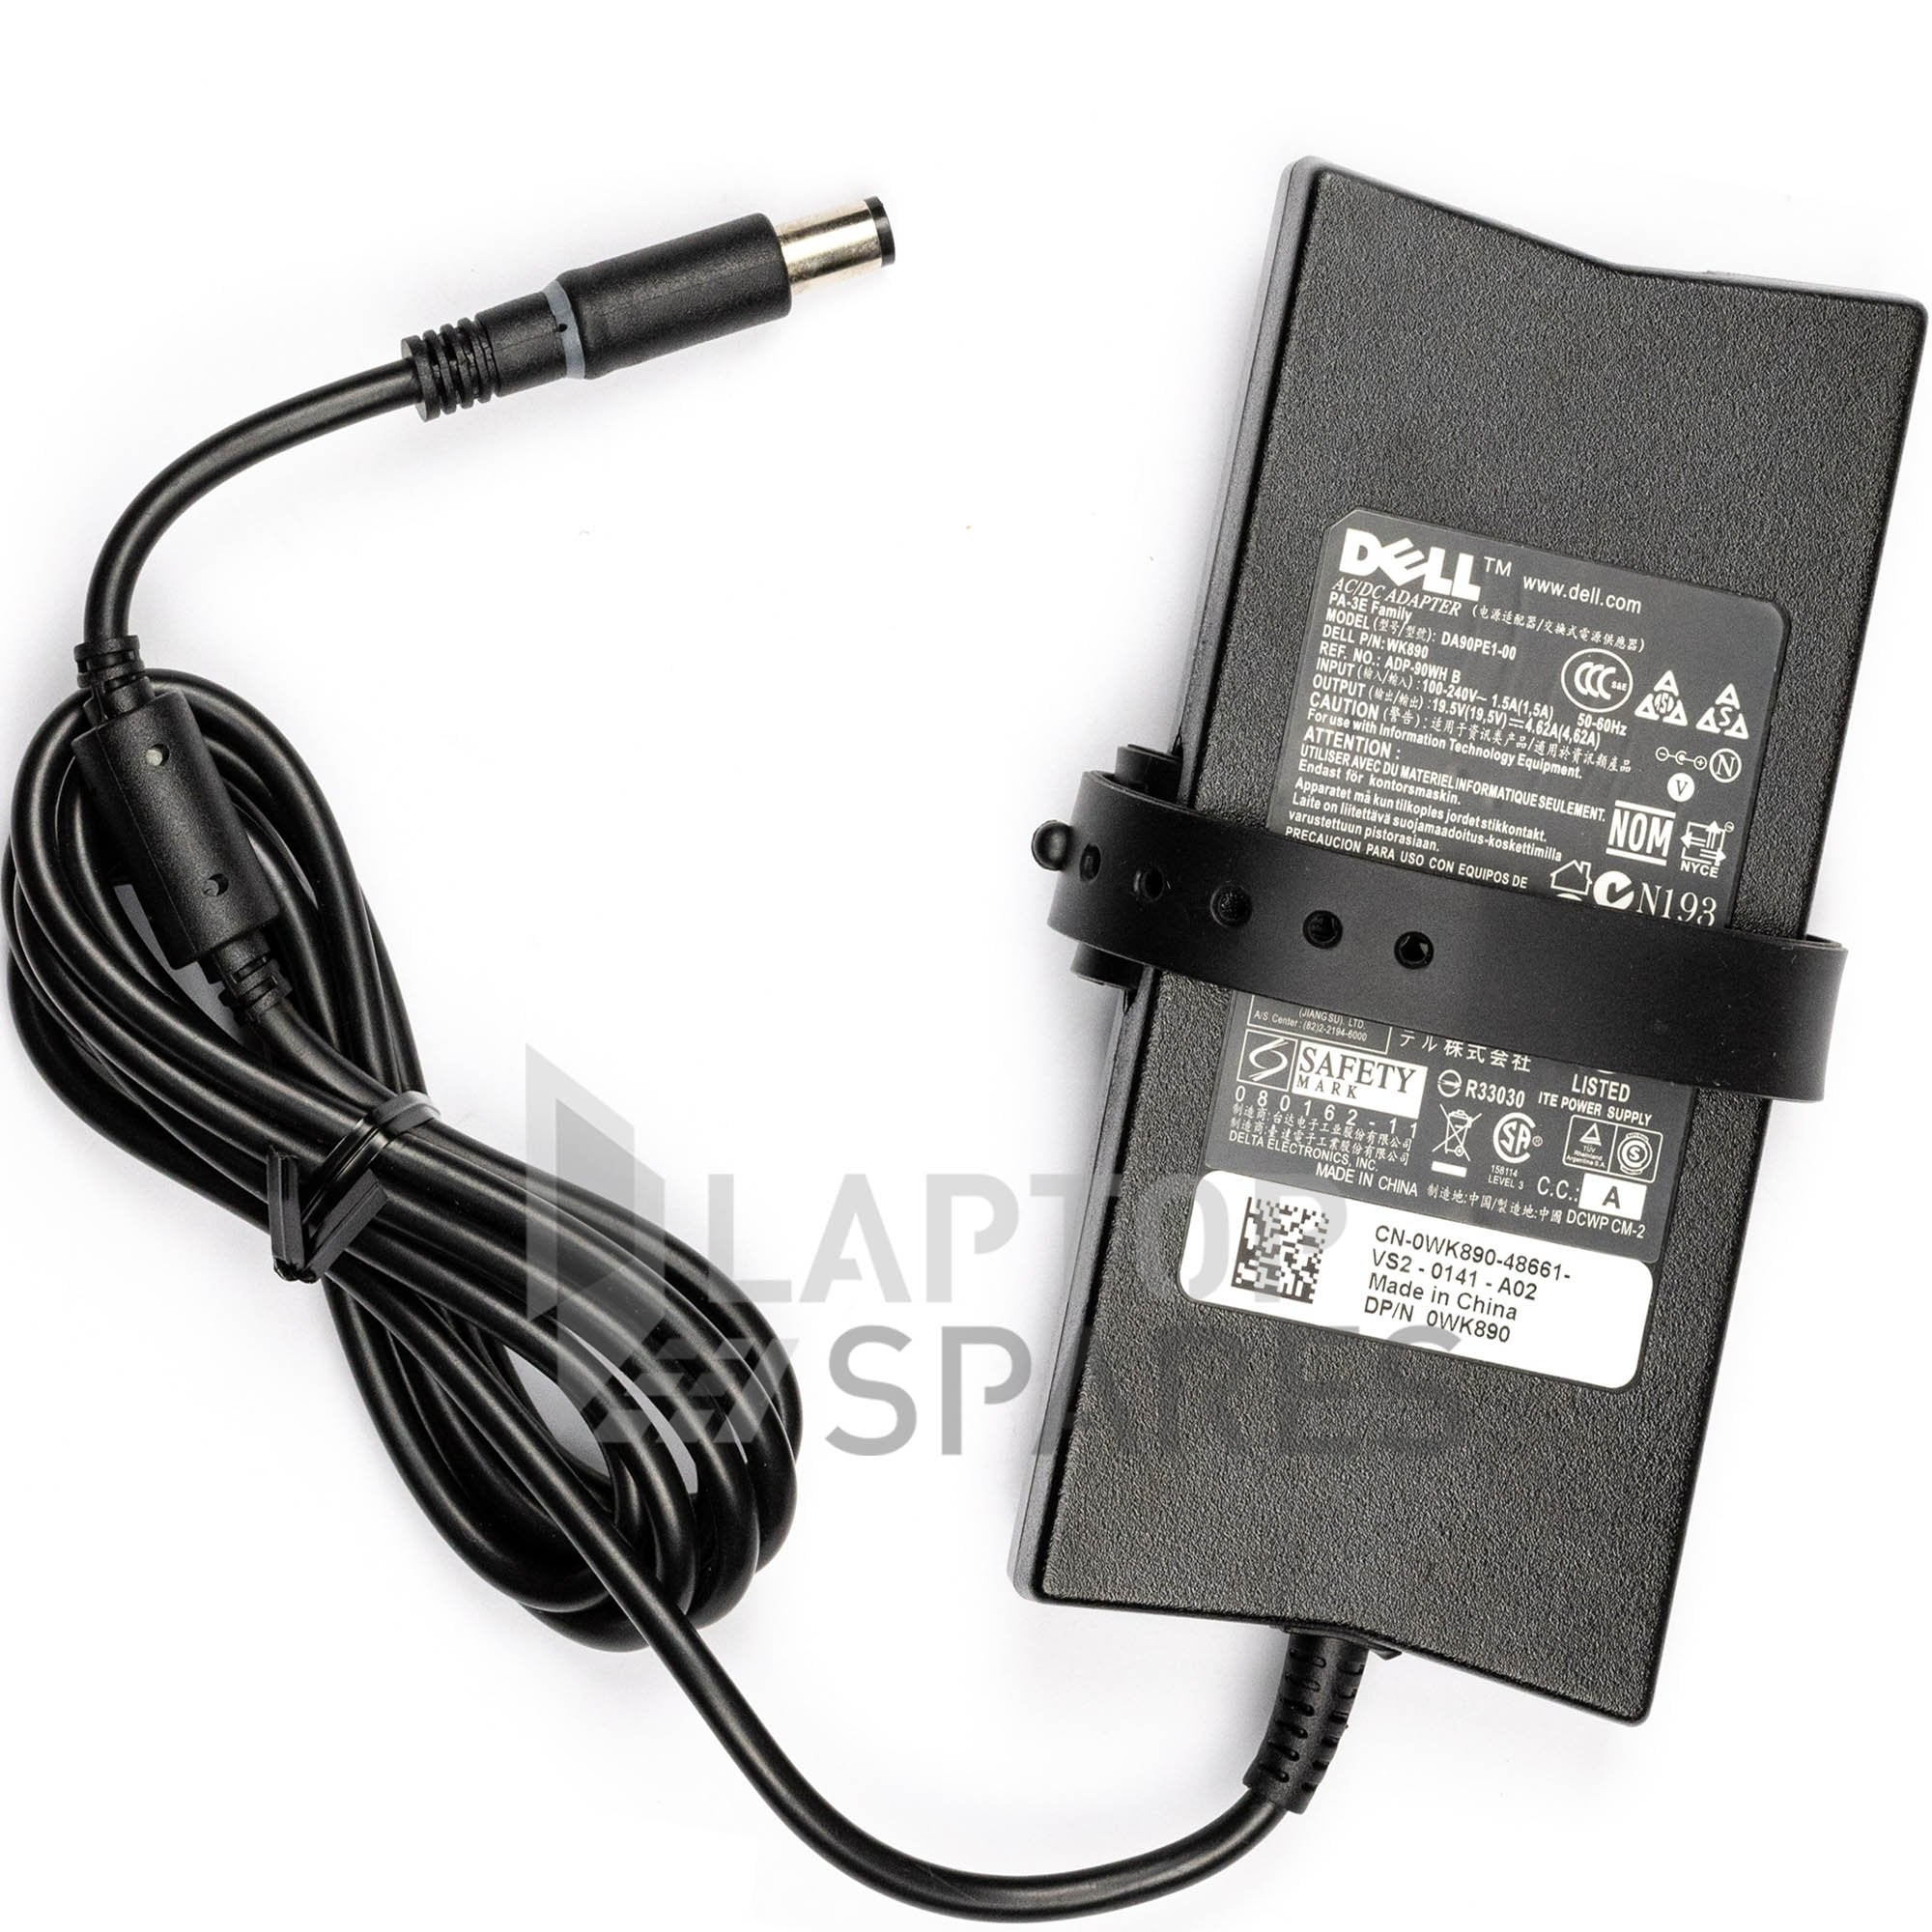 Dell Latitude E4200 E4300 E4310 Laptop Slim AC Adapter Charger